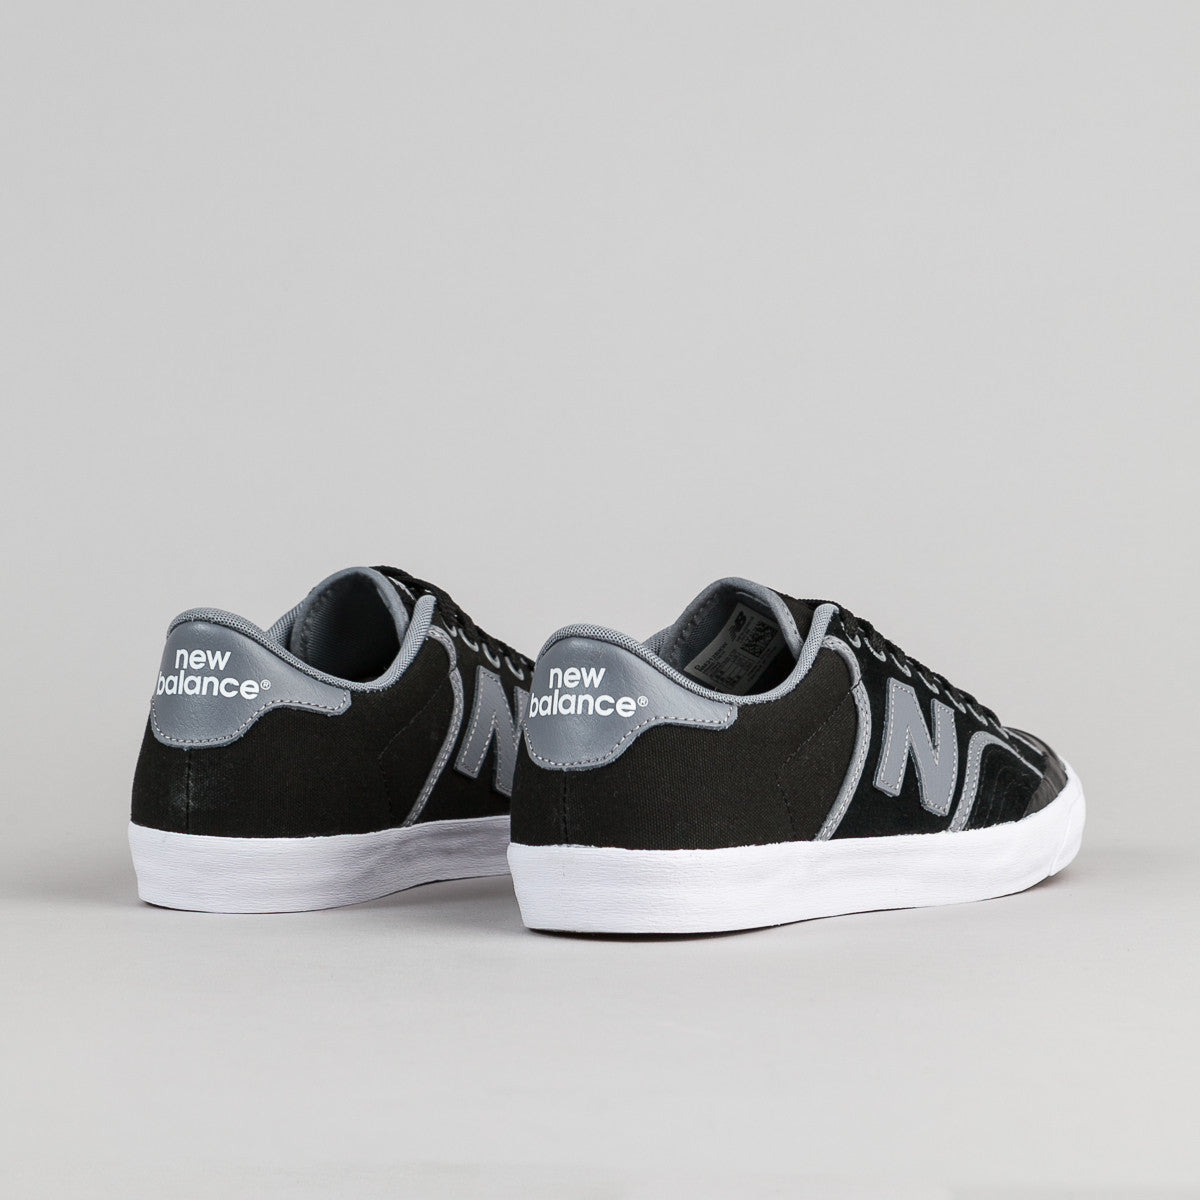 New Balance Numeric Pro Court 212 Shoes - Black / Grey